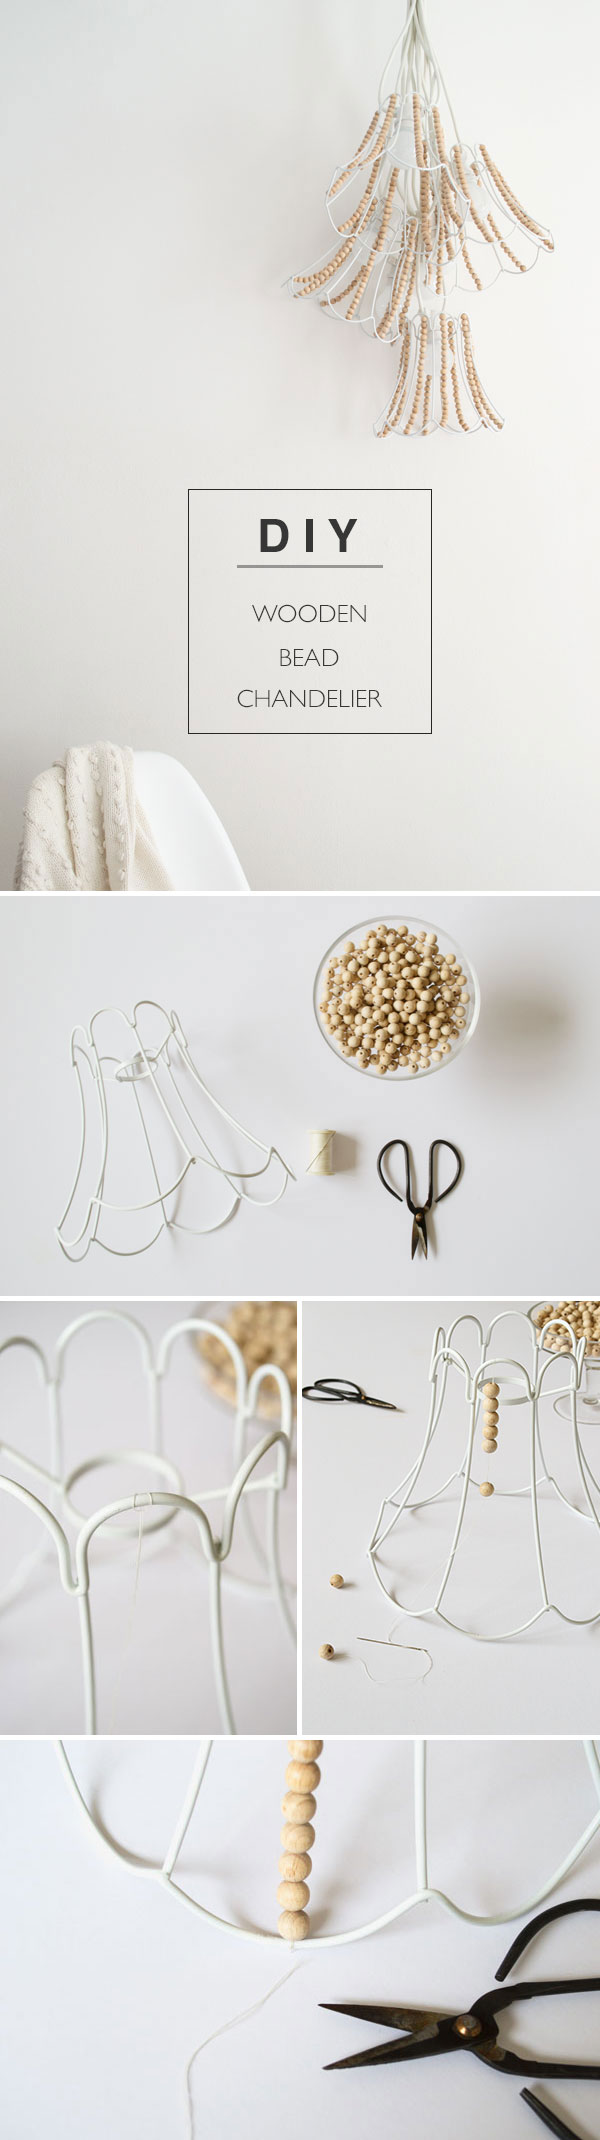 DIY_Wooden_Bead_Chandelier_Seletti_Out_There_Interiors_Winter_Lighting